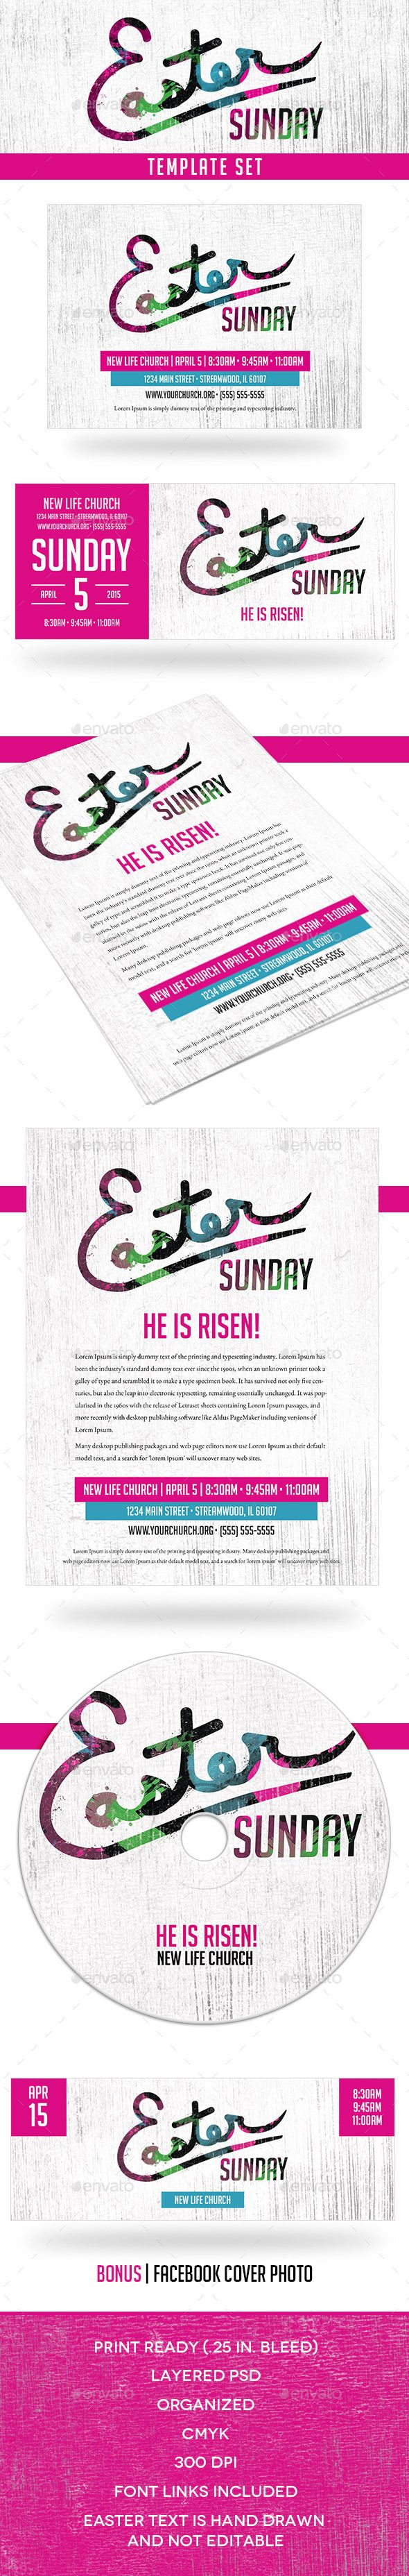 Easter Sunday Church Template Set - Pastel - Church Flyers